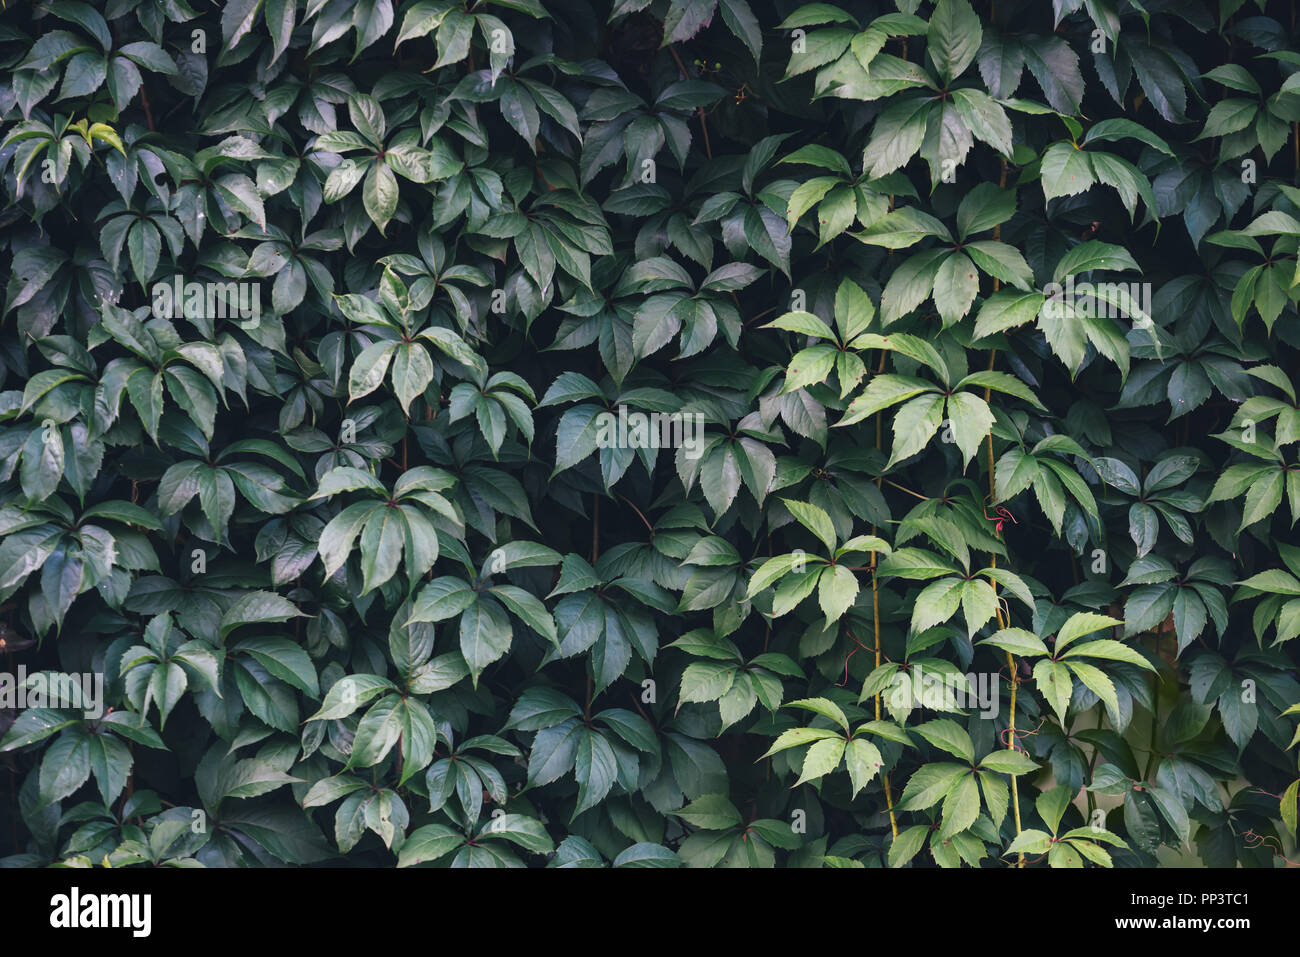 Texture of ivy leaves closeup. Green wall in garden. Gardening background - Stock Image